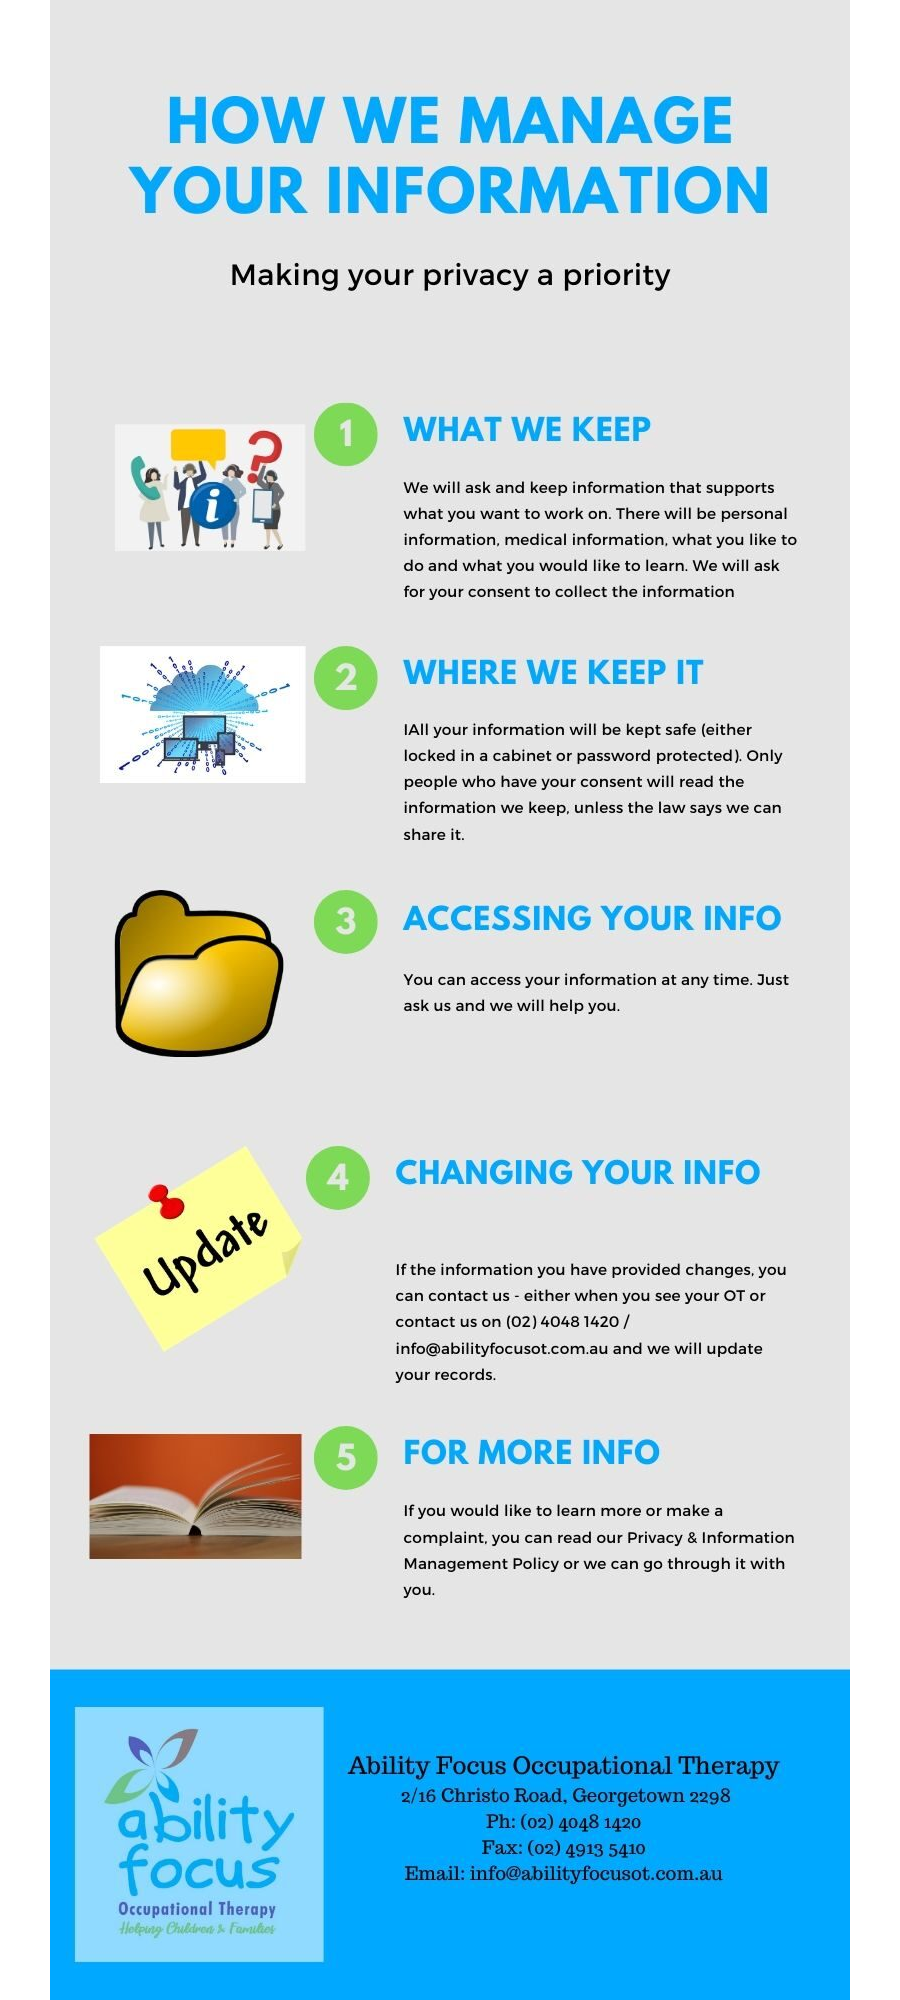 How We Manage Your Information flyer